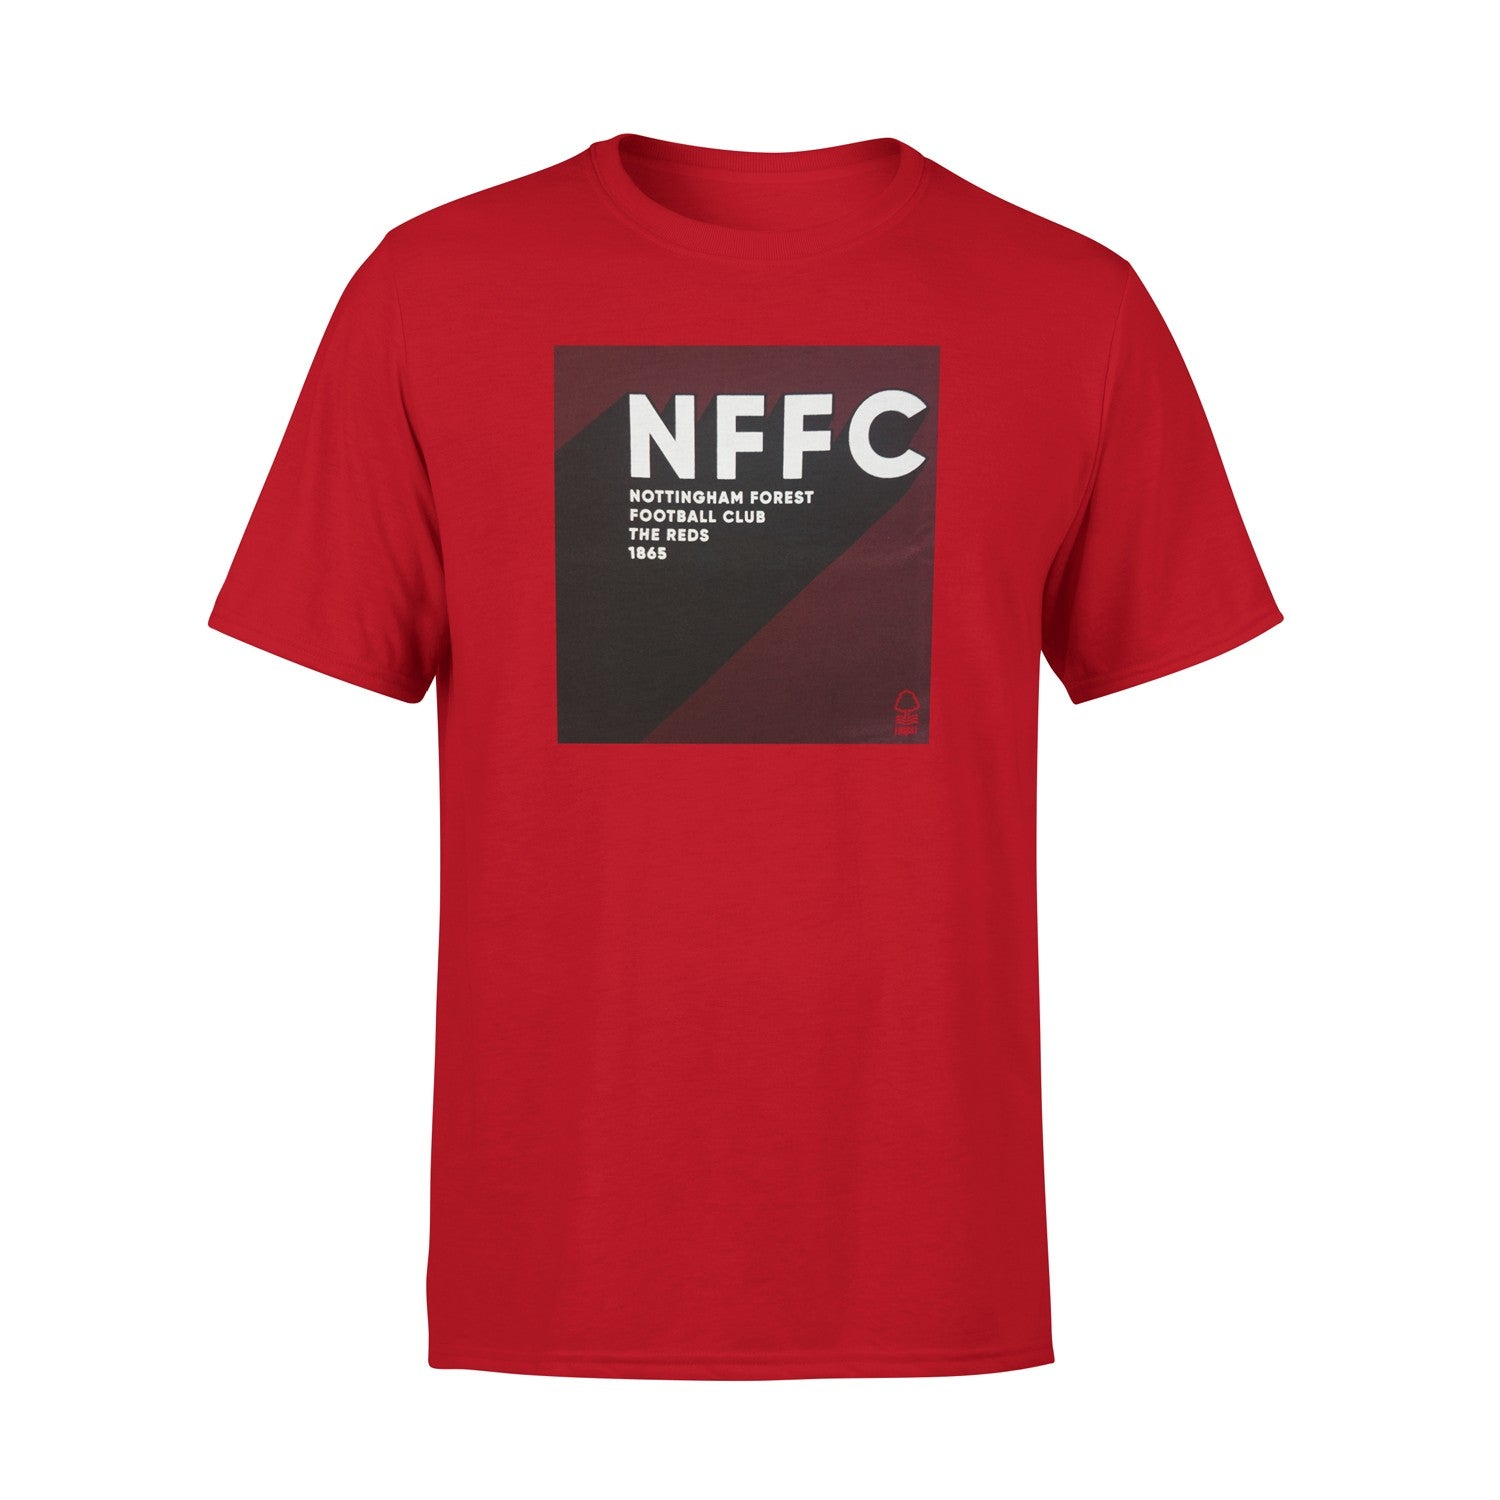 NFFC Junior Red Square T-Shirt - Nottingham Forest